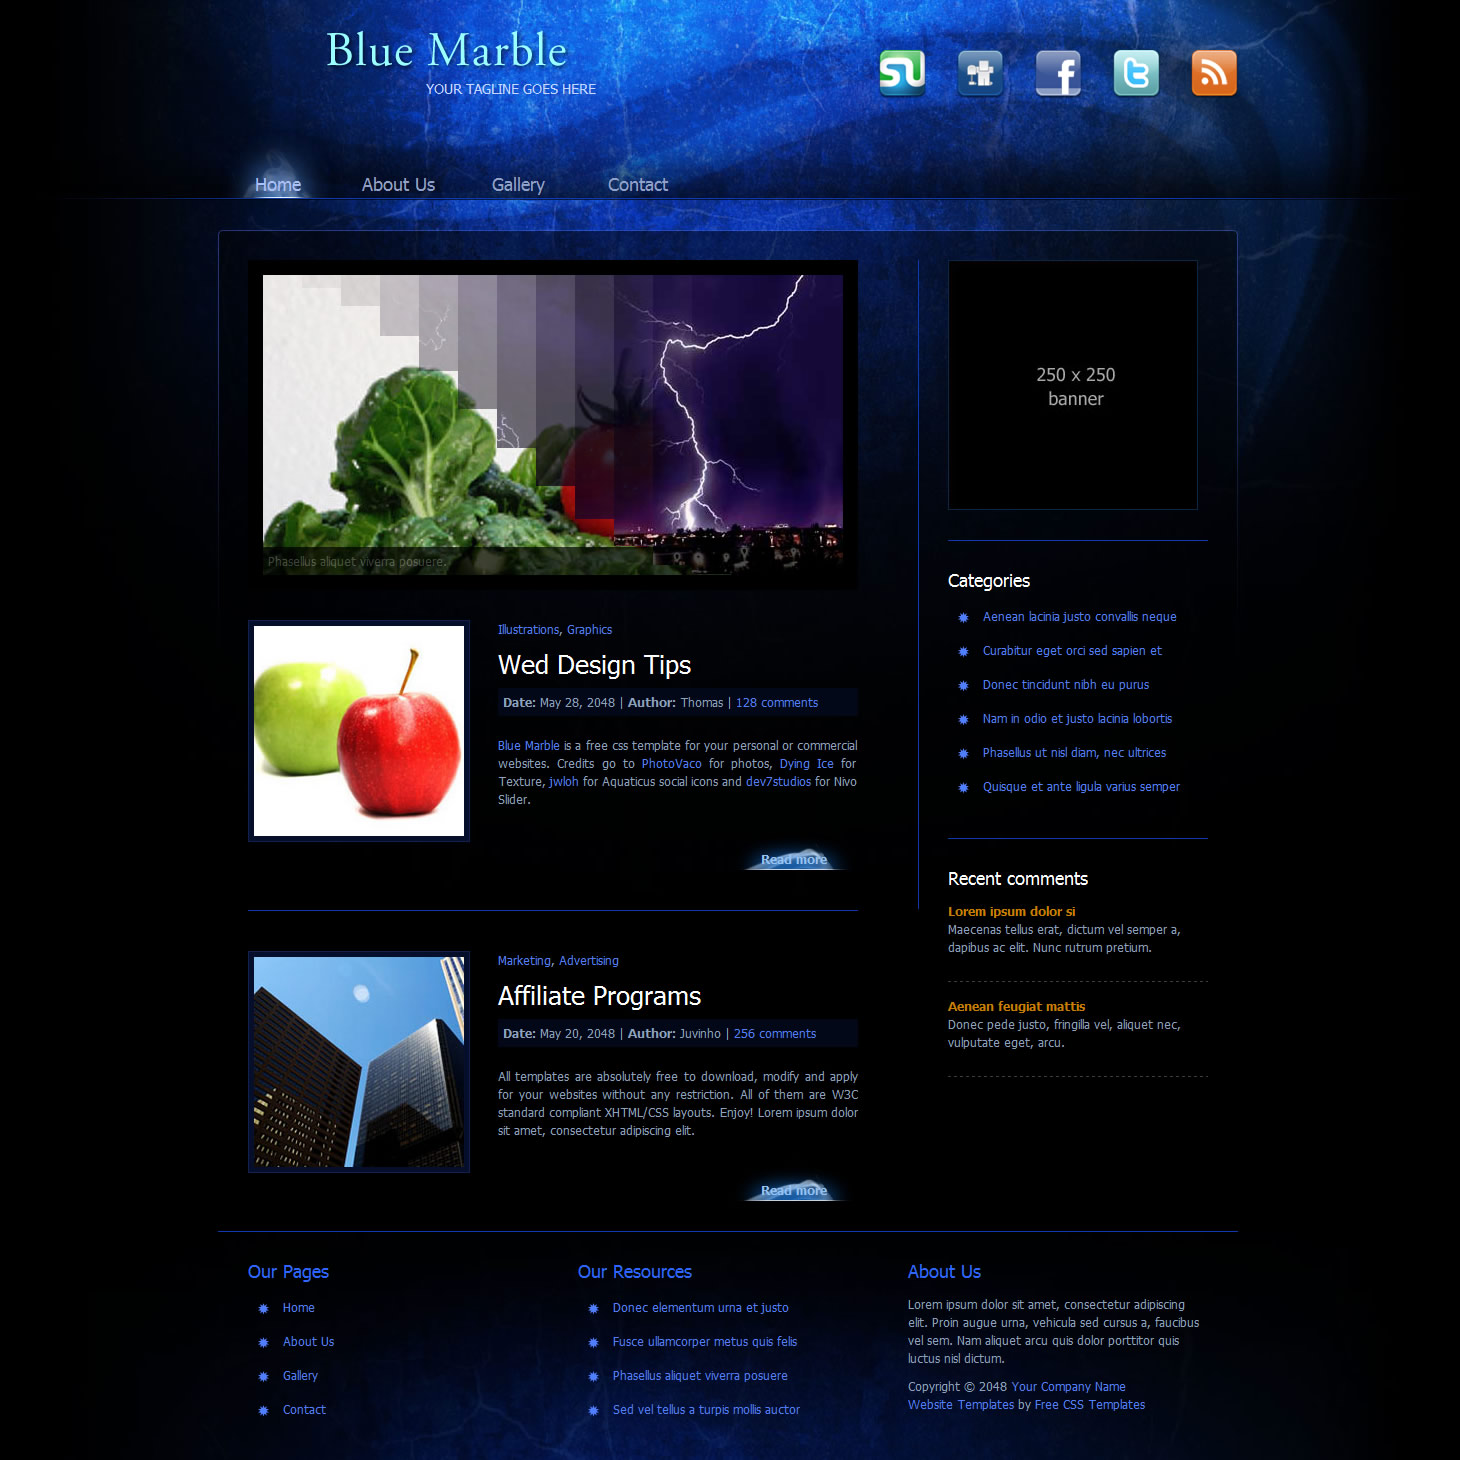 templatemo_316_blue_marblejpg